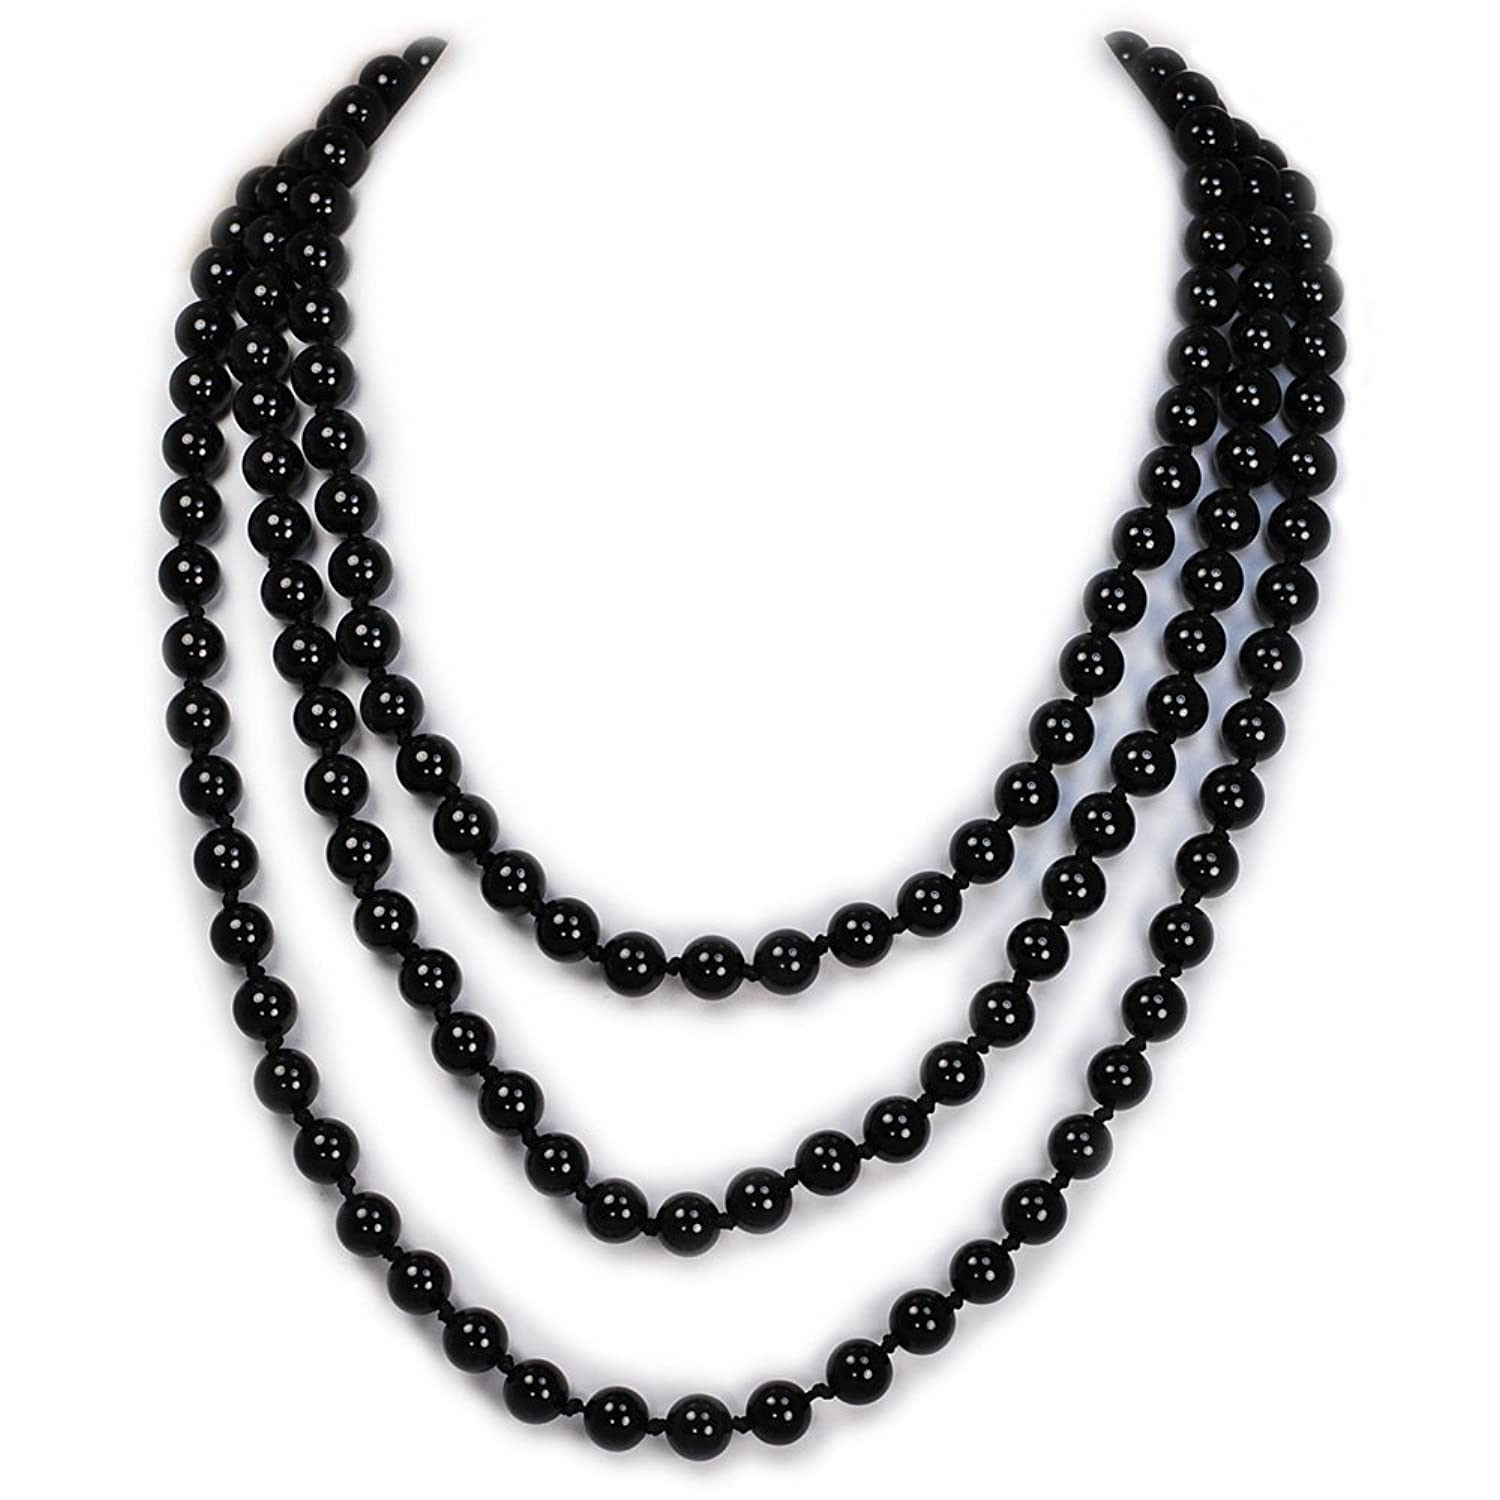 "004 Ny6design Gorgeous! Round Black Onyx Long Hand-Knotted Necklace 60"" N16040512d"